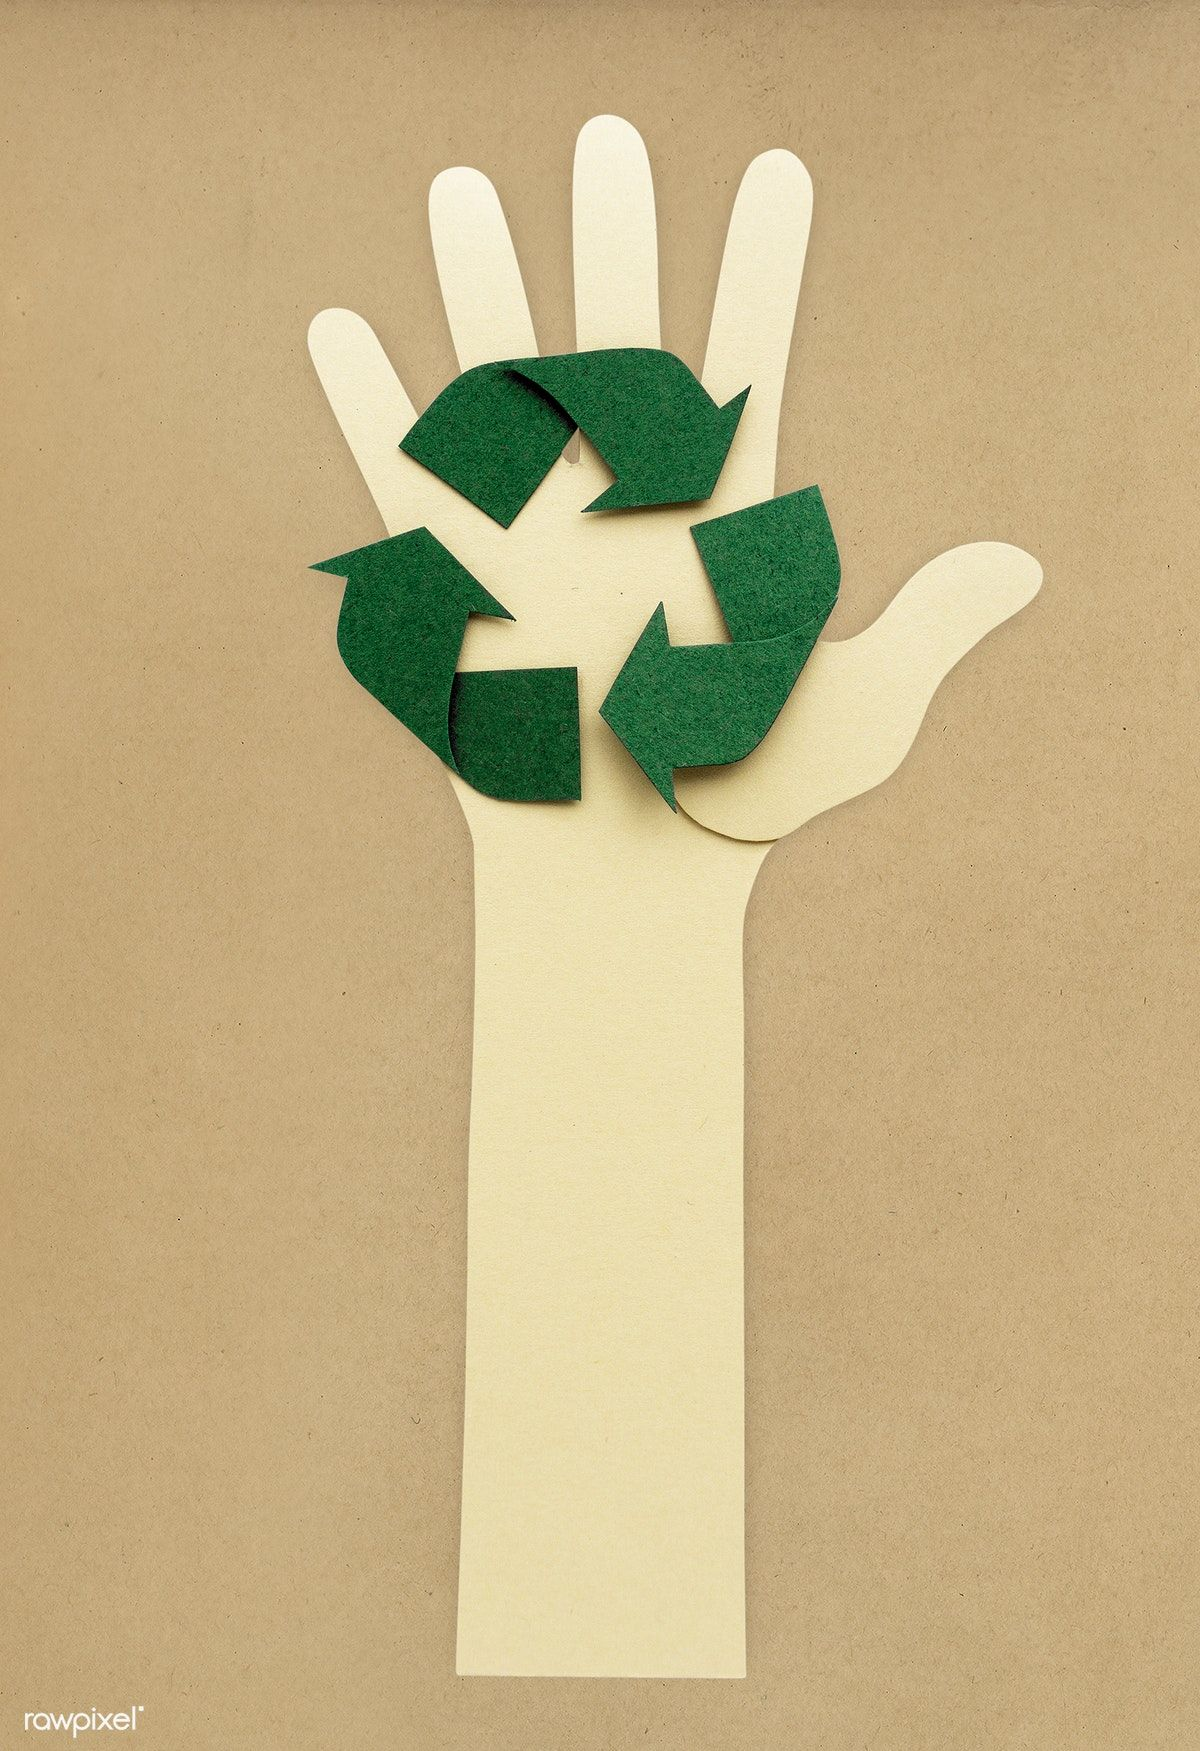 Download premium psd of Paper craft of hand icon 262539